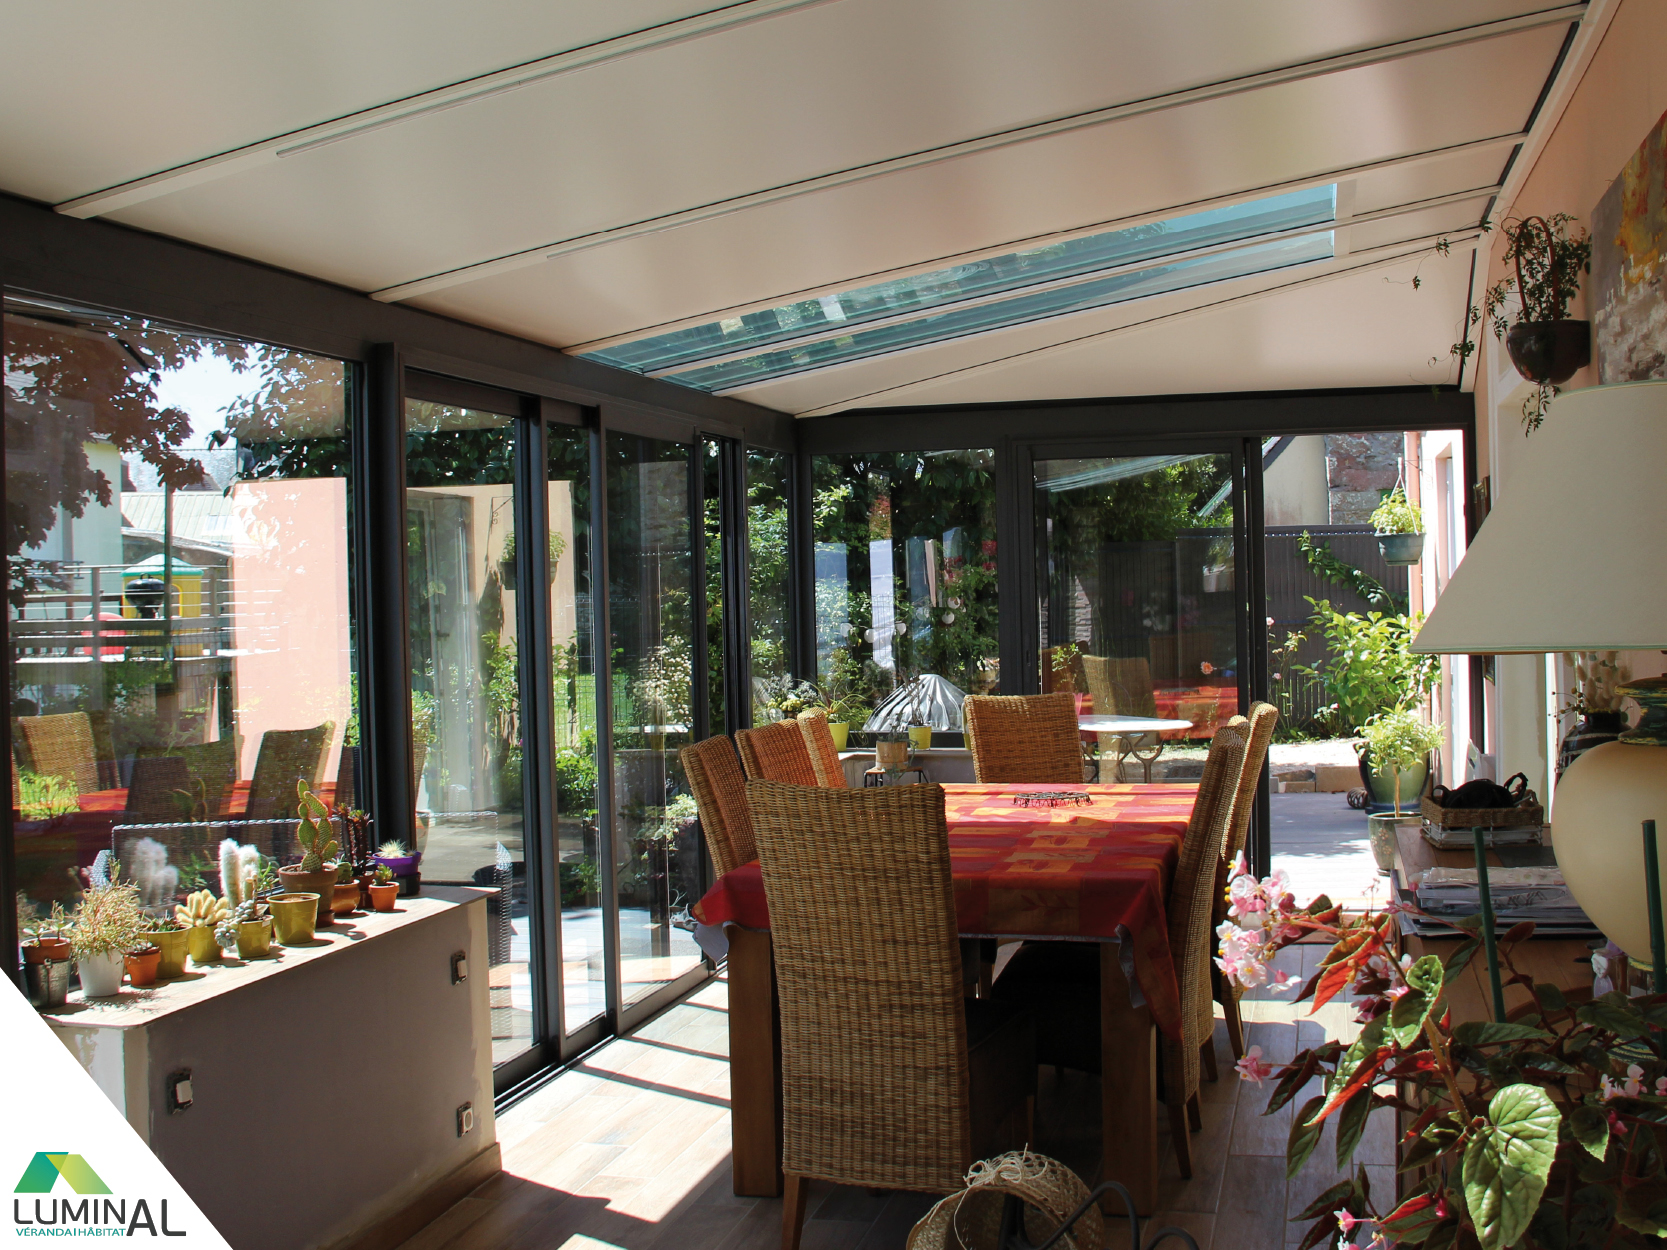 luminal-menuiserie-veranda-brest-quimper-crozon-extention-maison_renovation_3